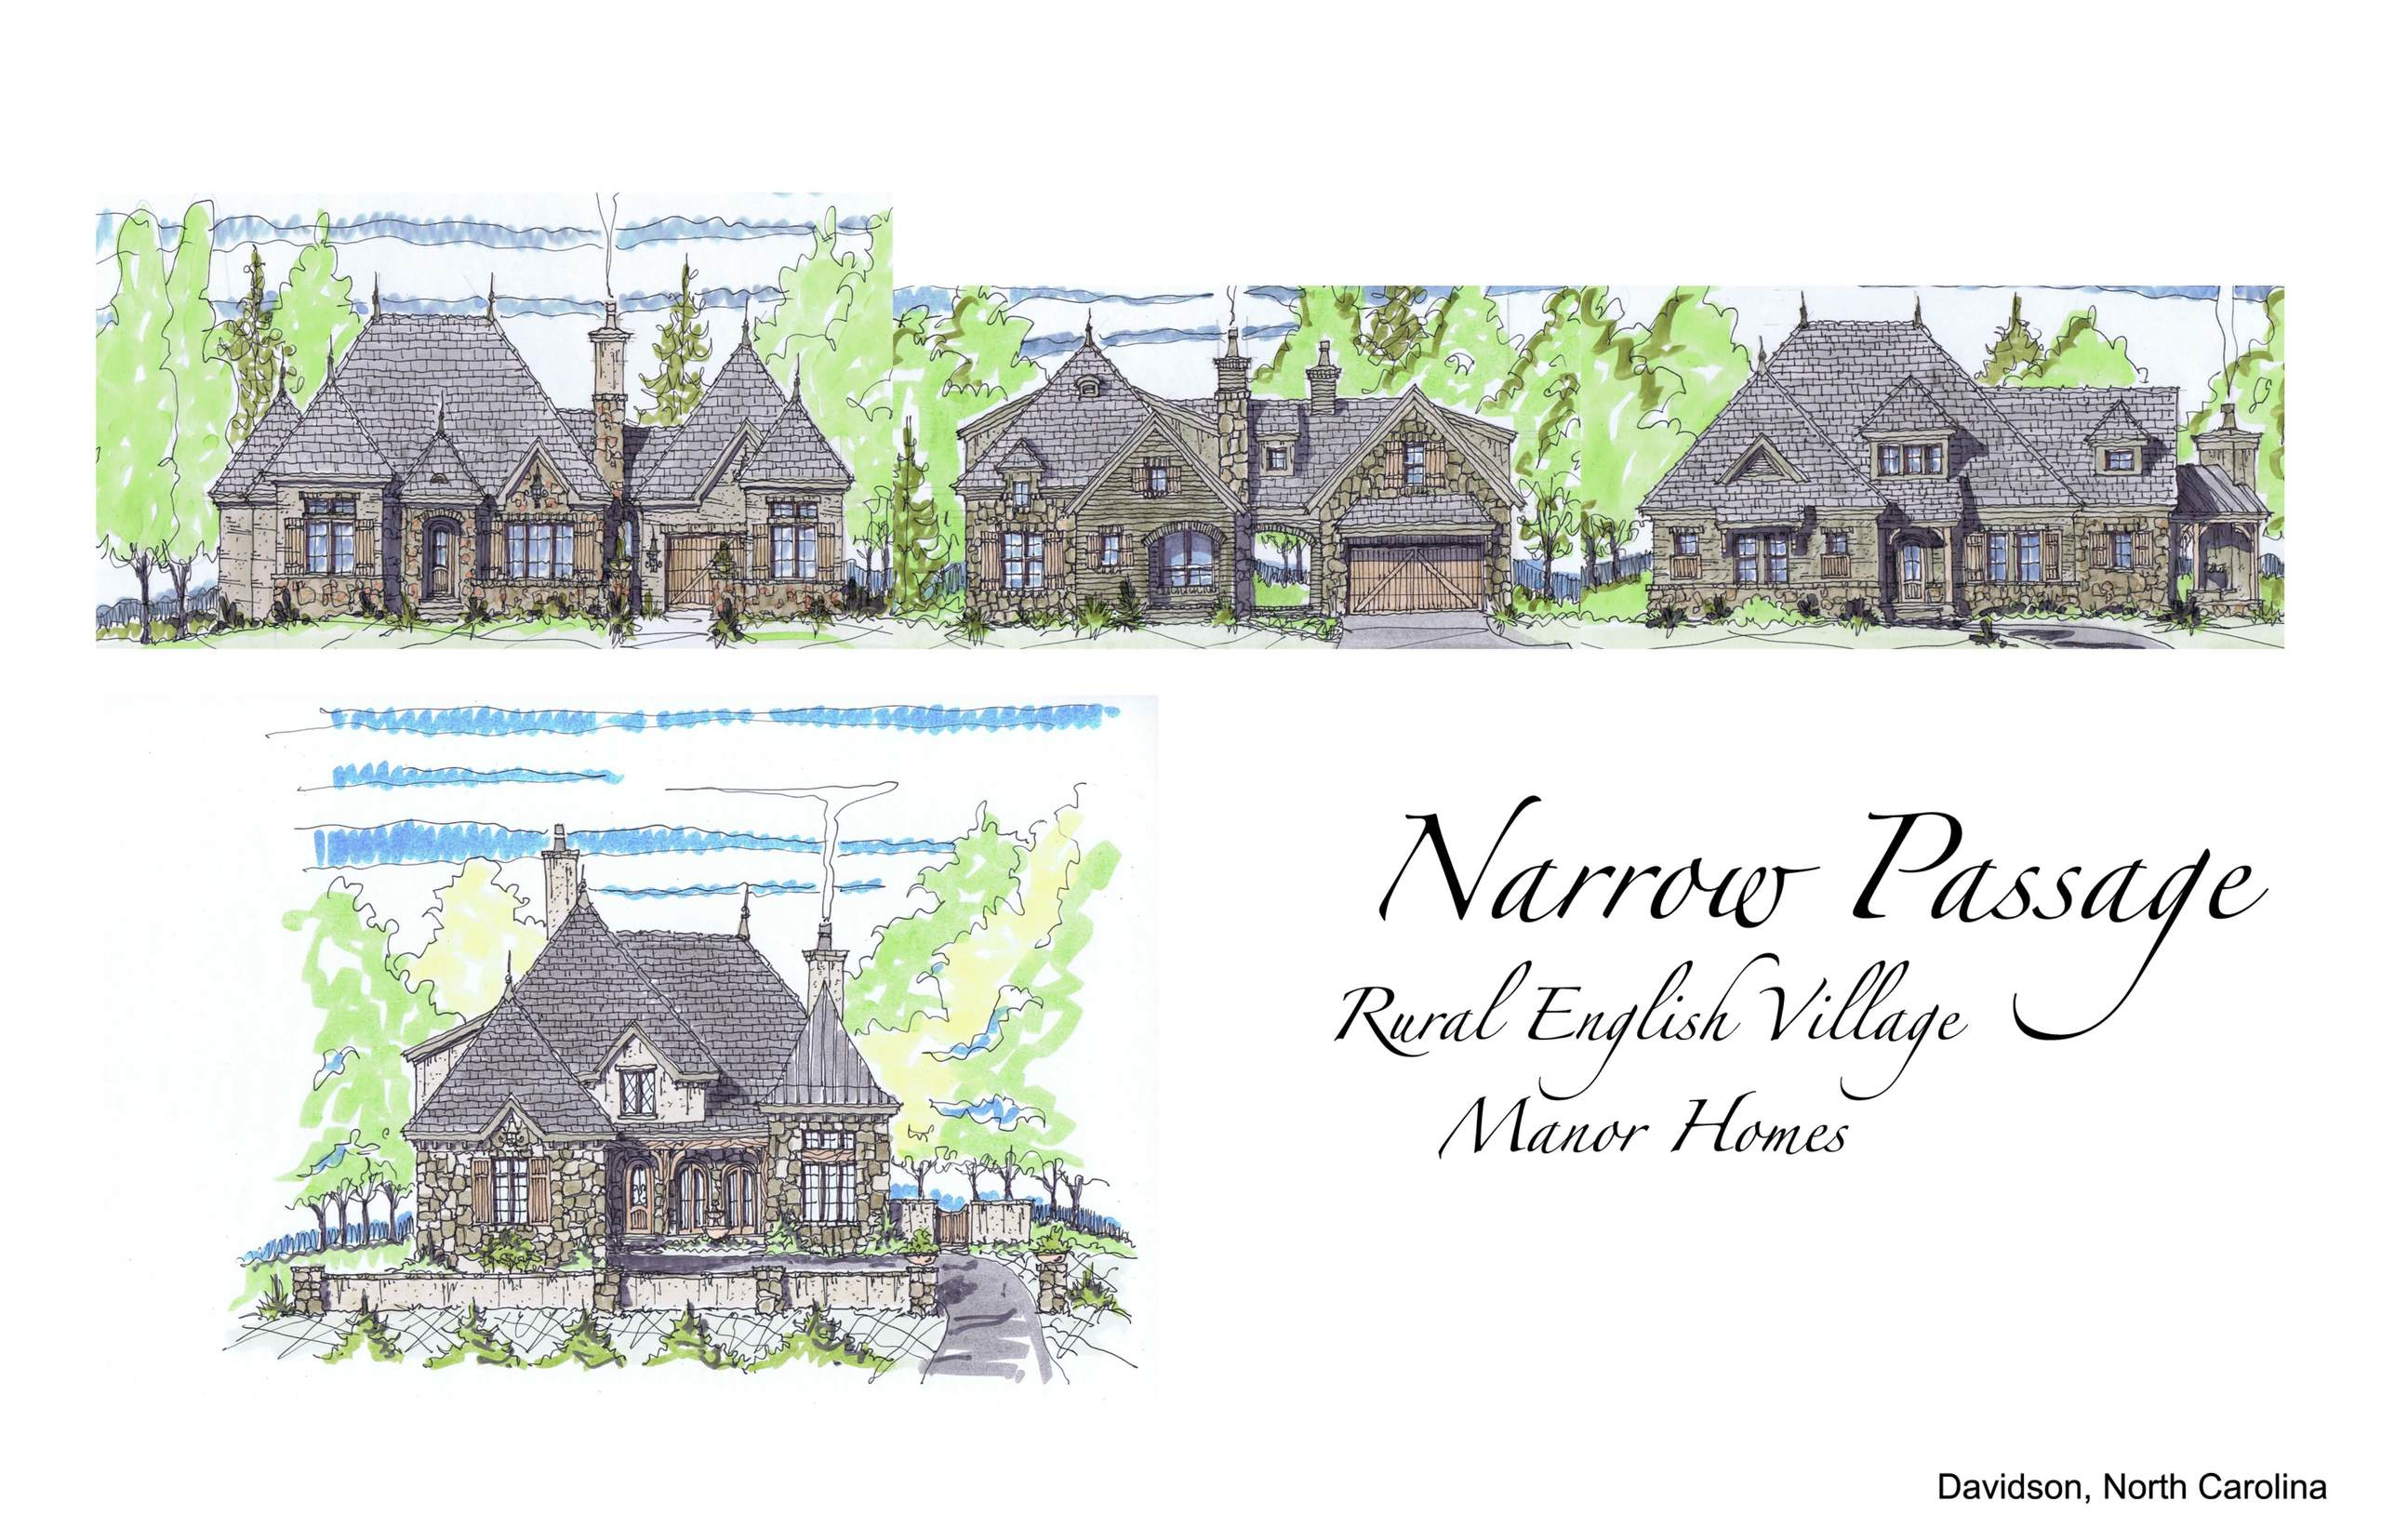 Narrow Passage Manor Homes